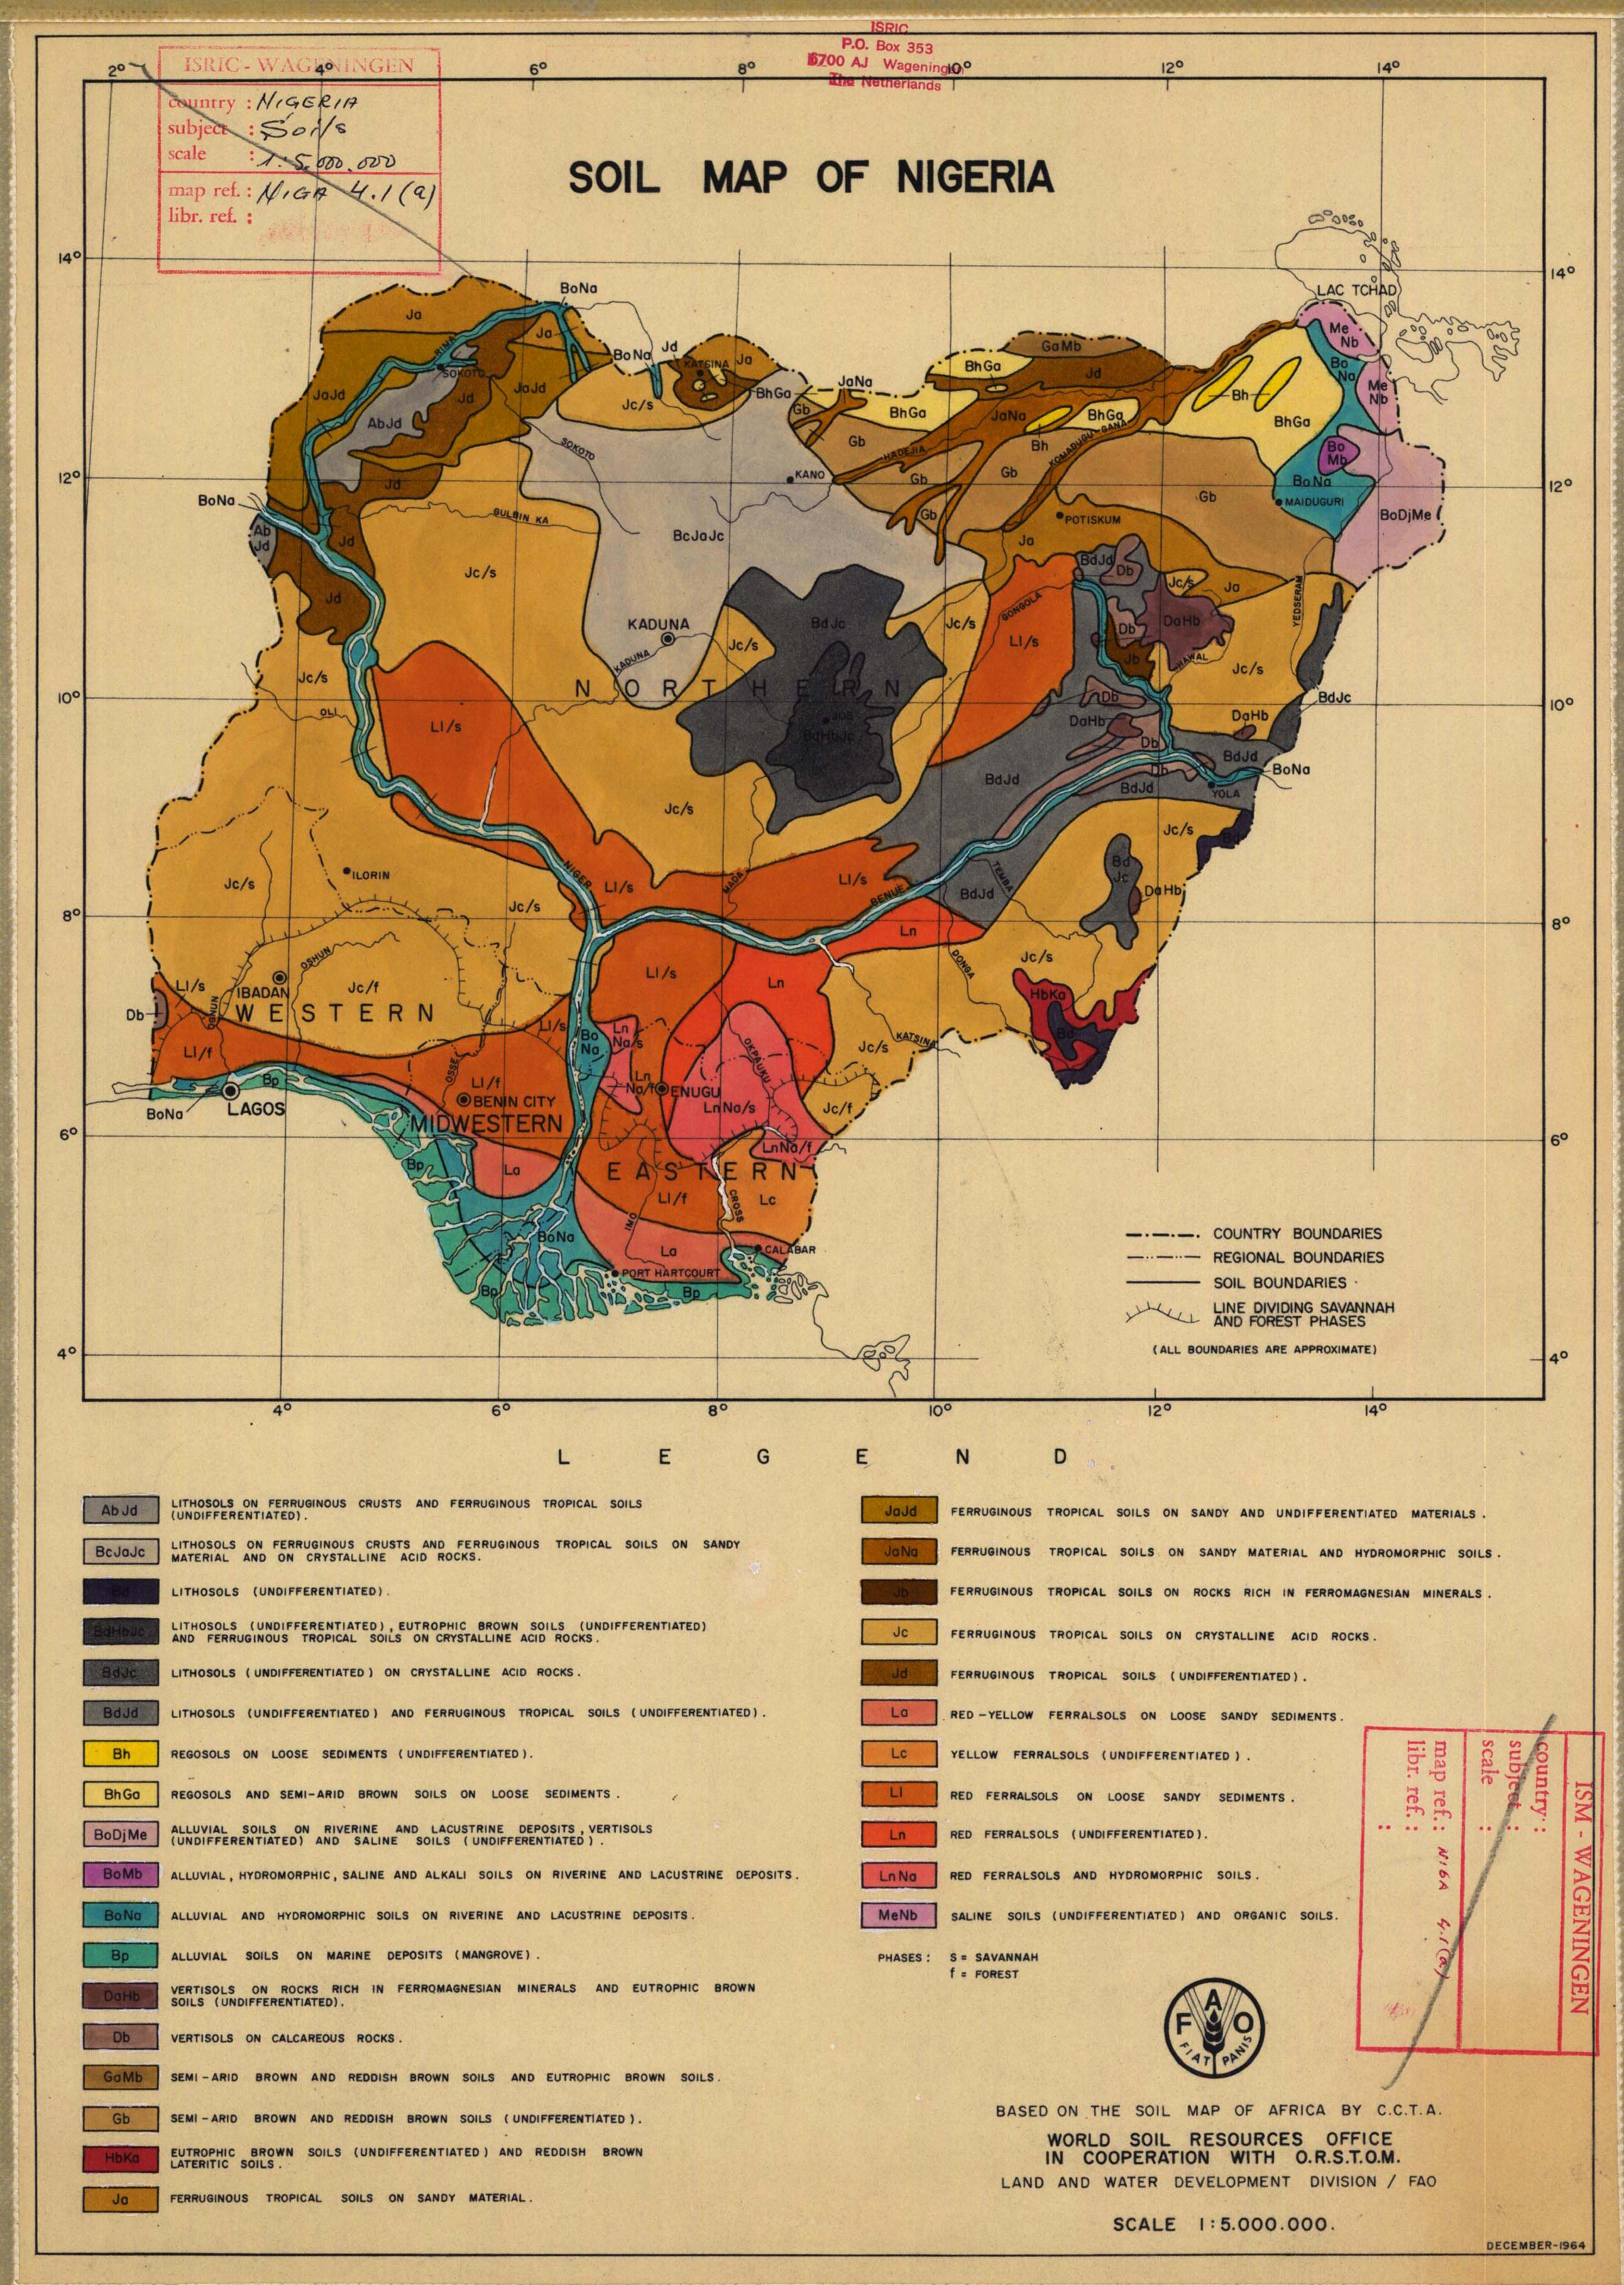 Africa Map Nigeria.Soil Map Of Nigeria Based On The Soil Map Of Africa By C C T A